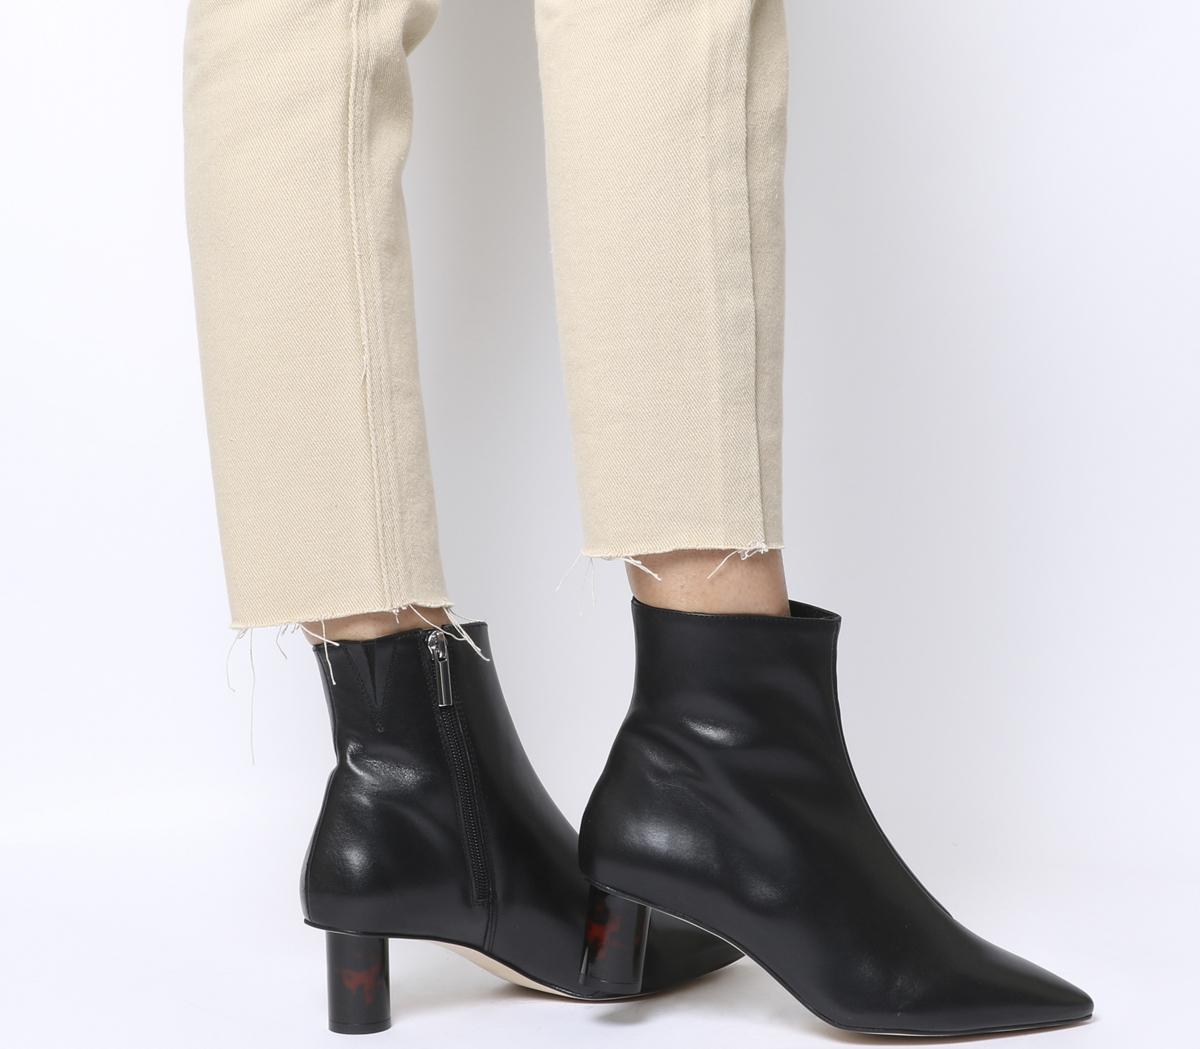 Afflict Cylindrical Heel Boots